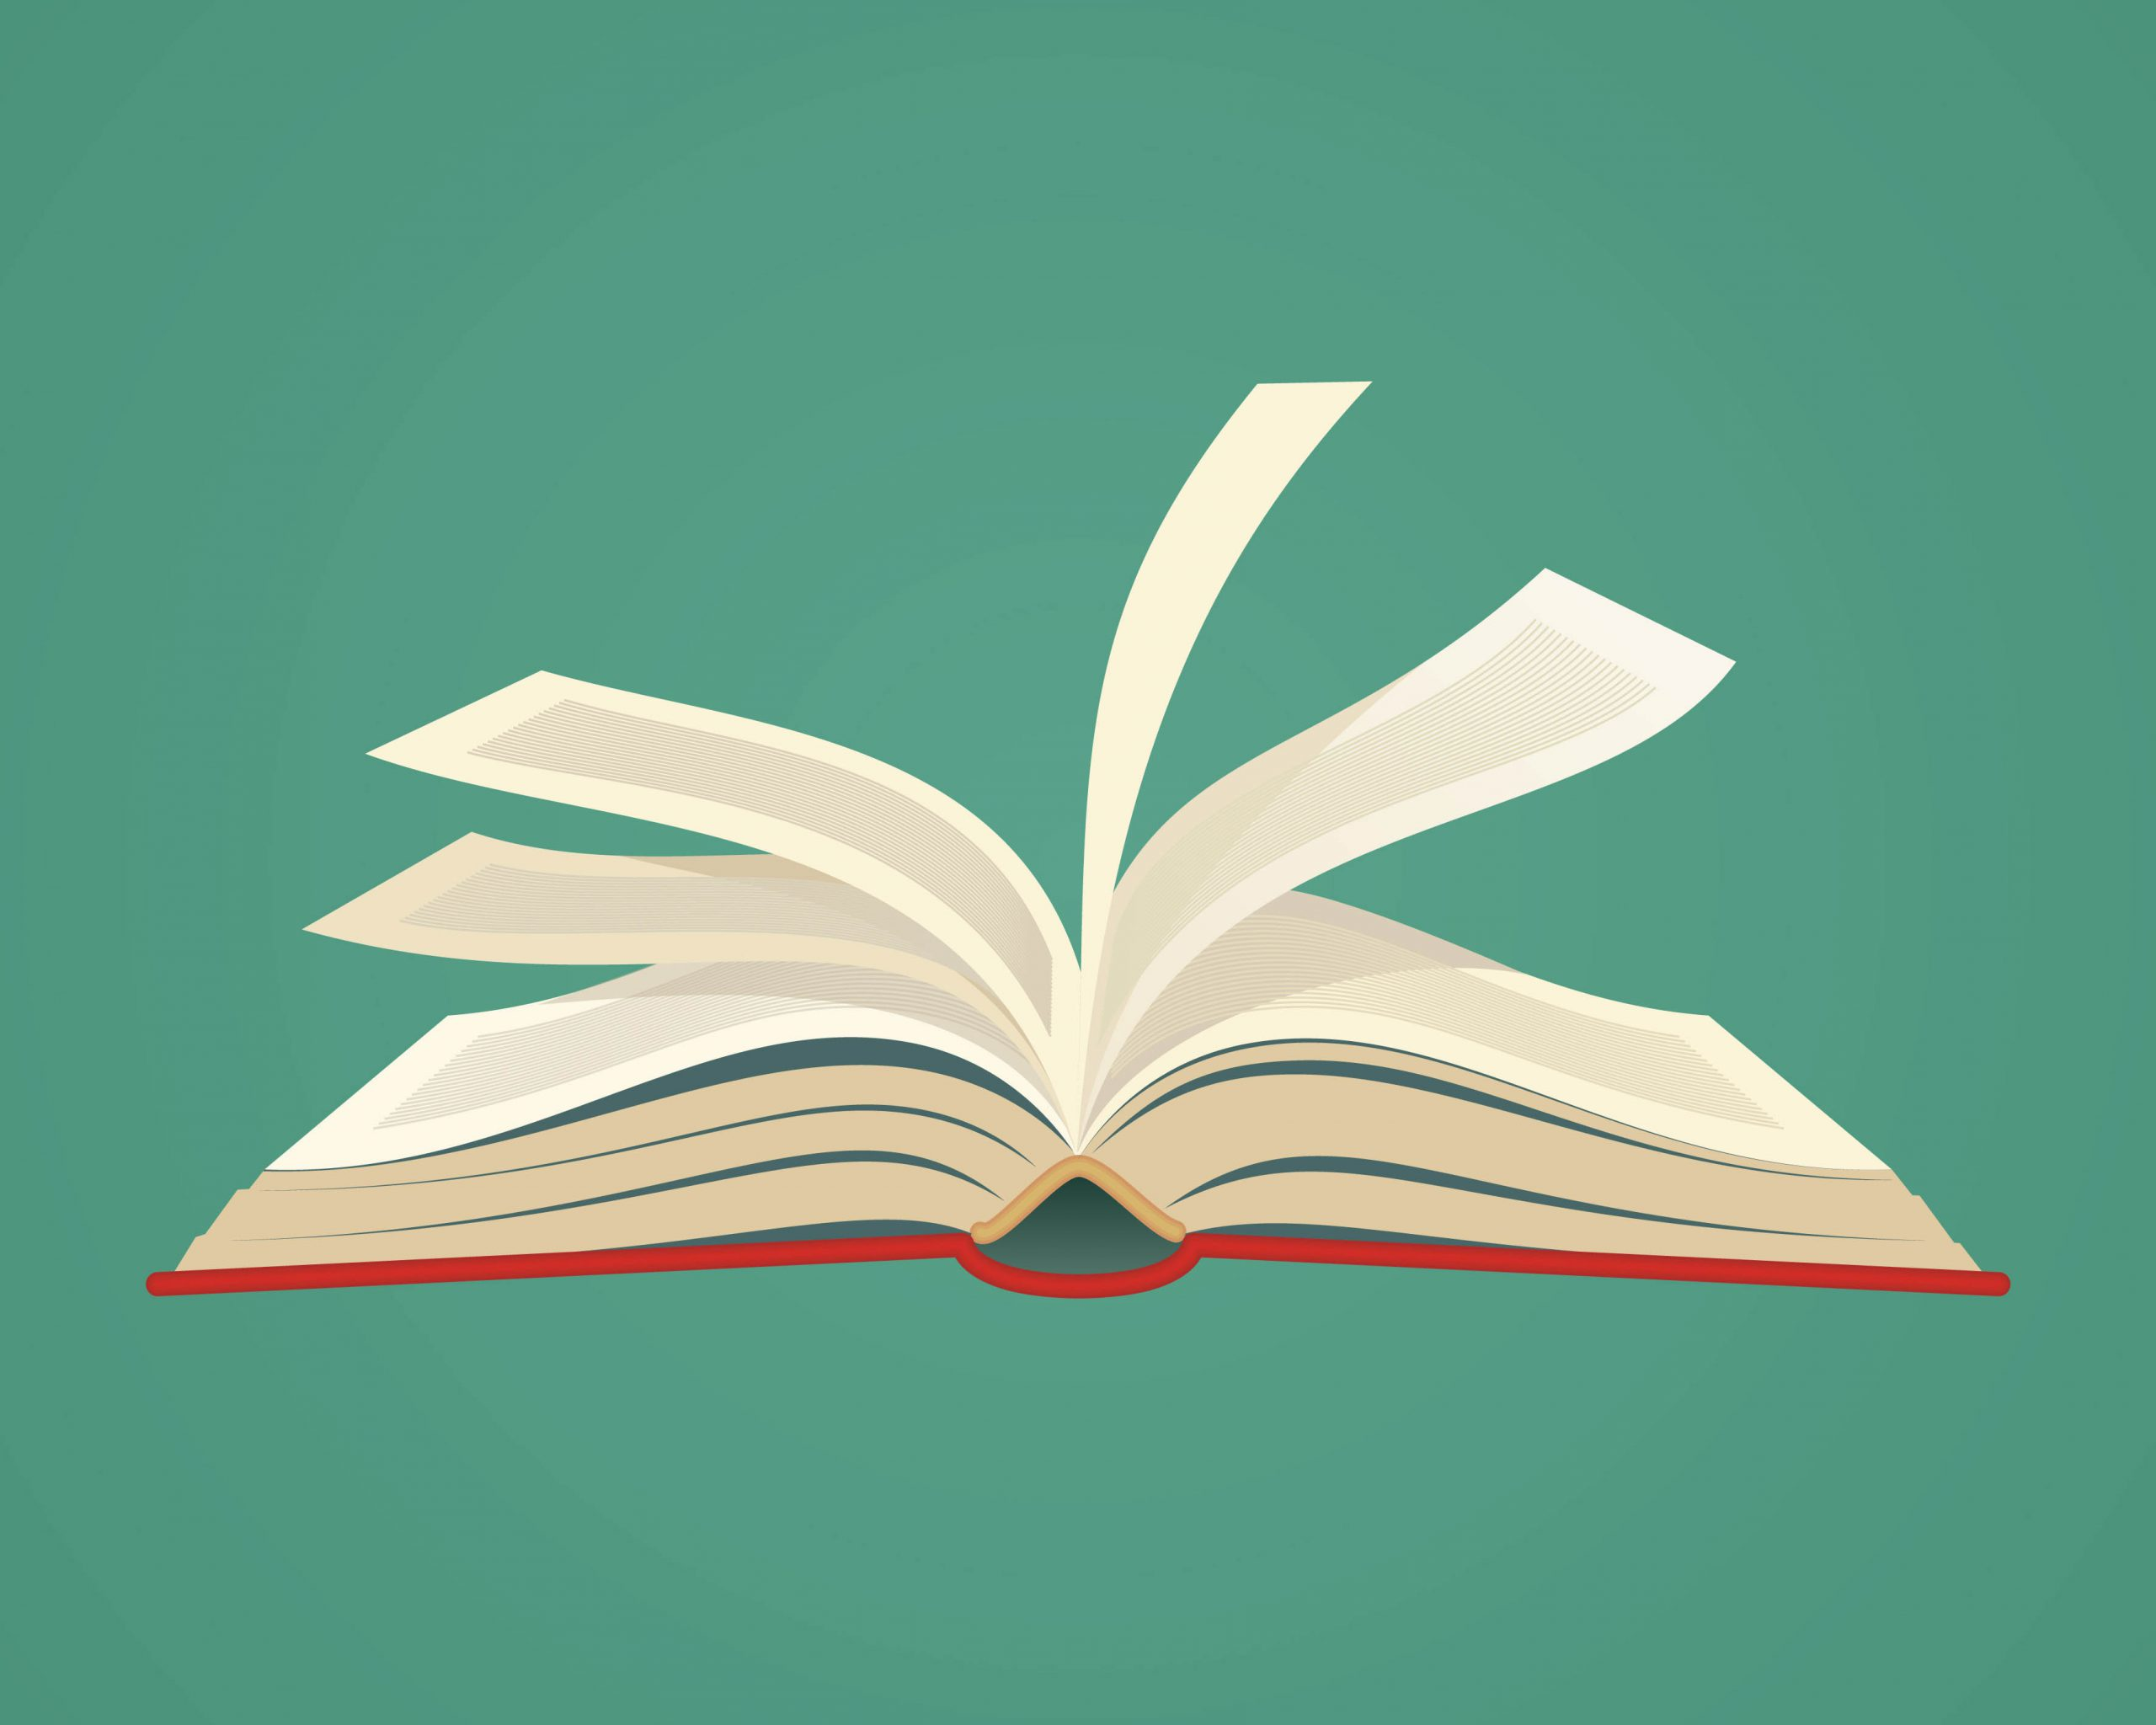 Open book with ruffling pages